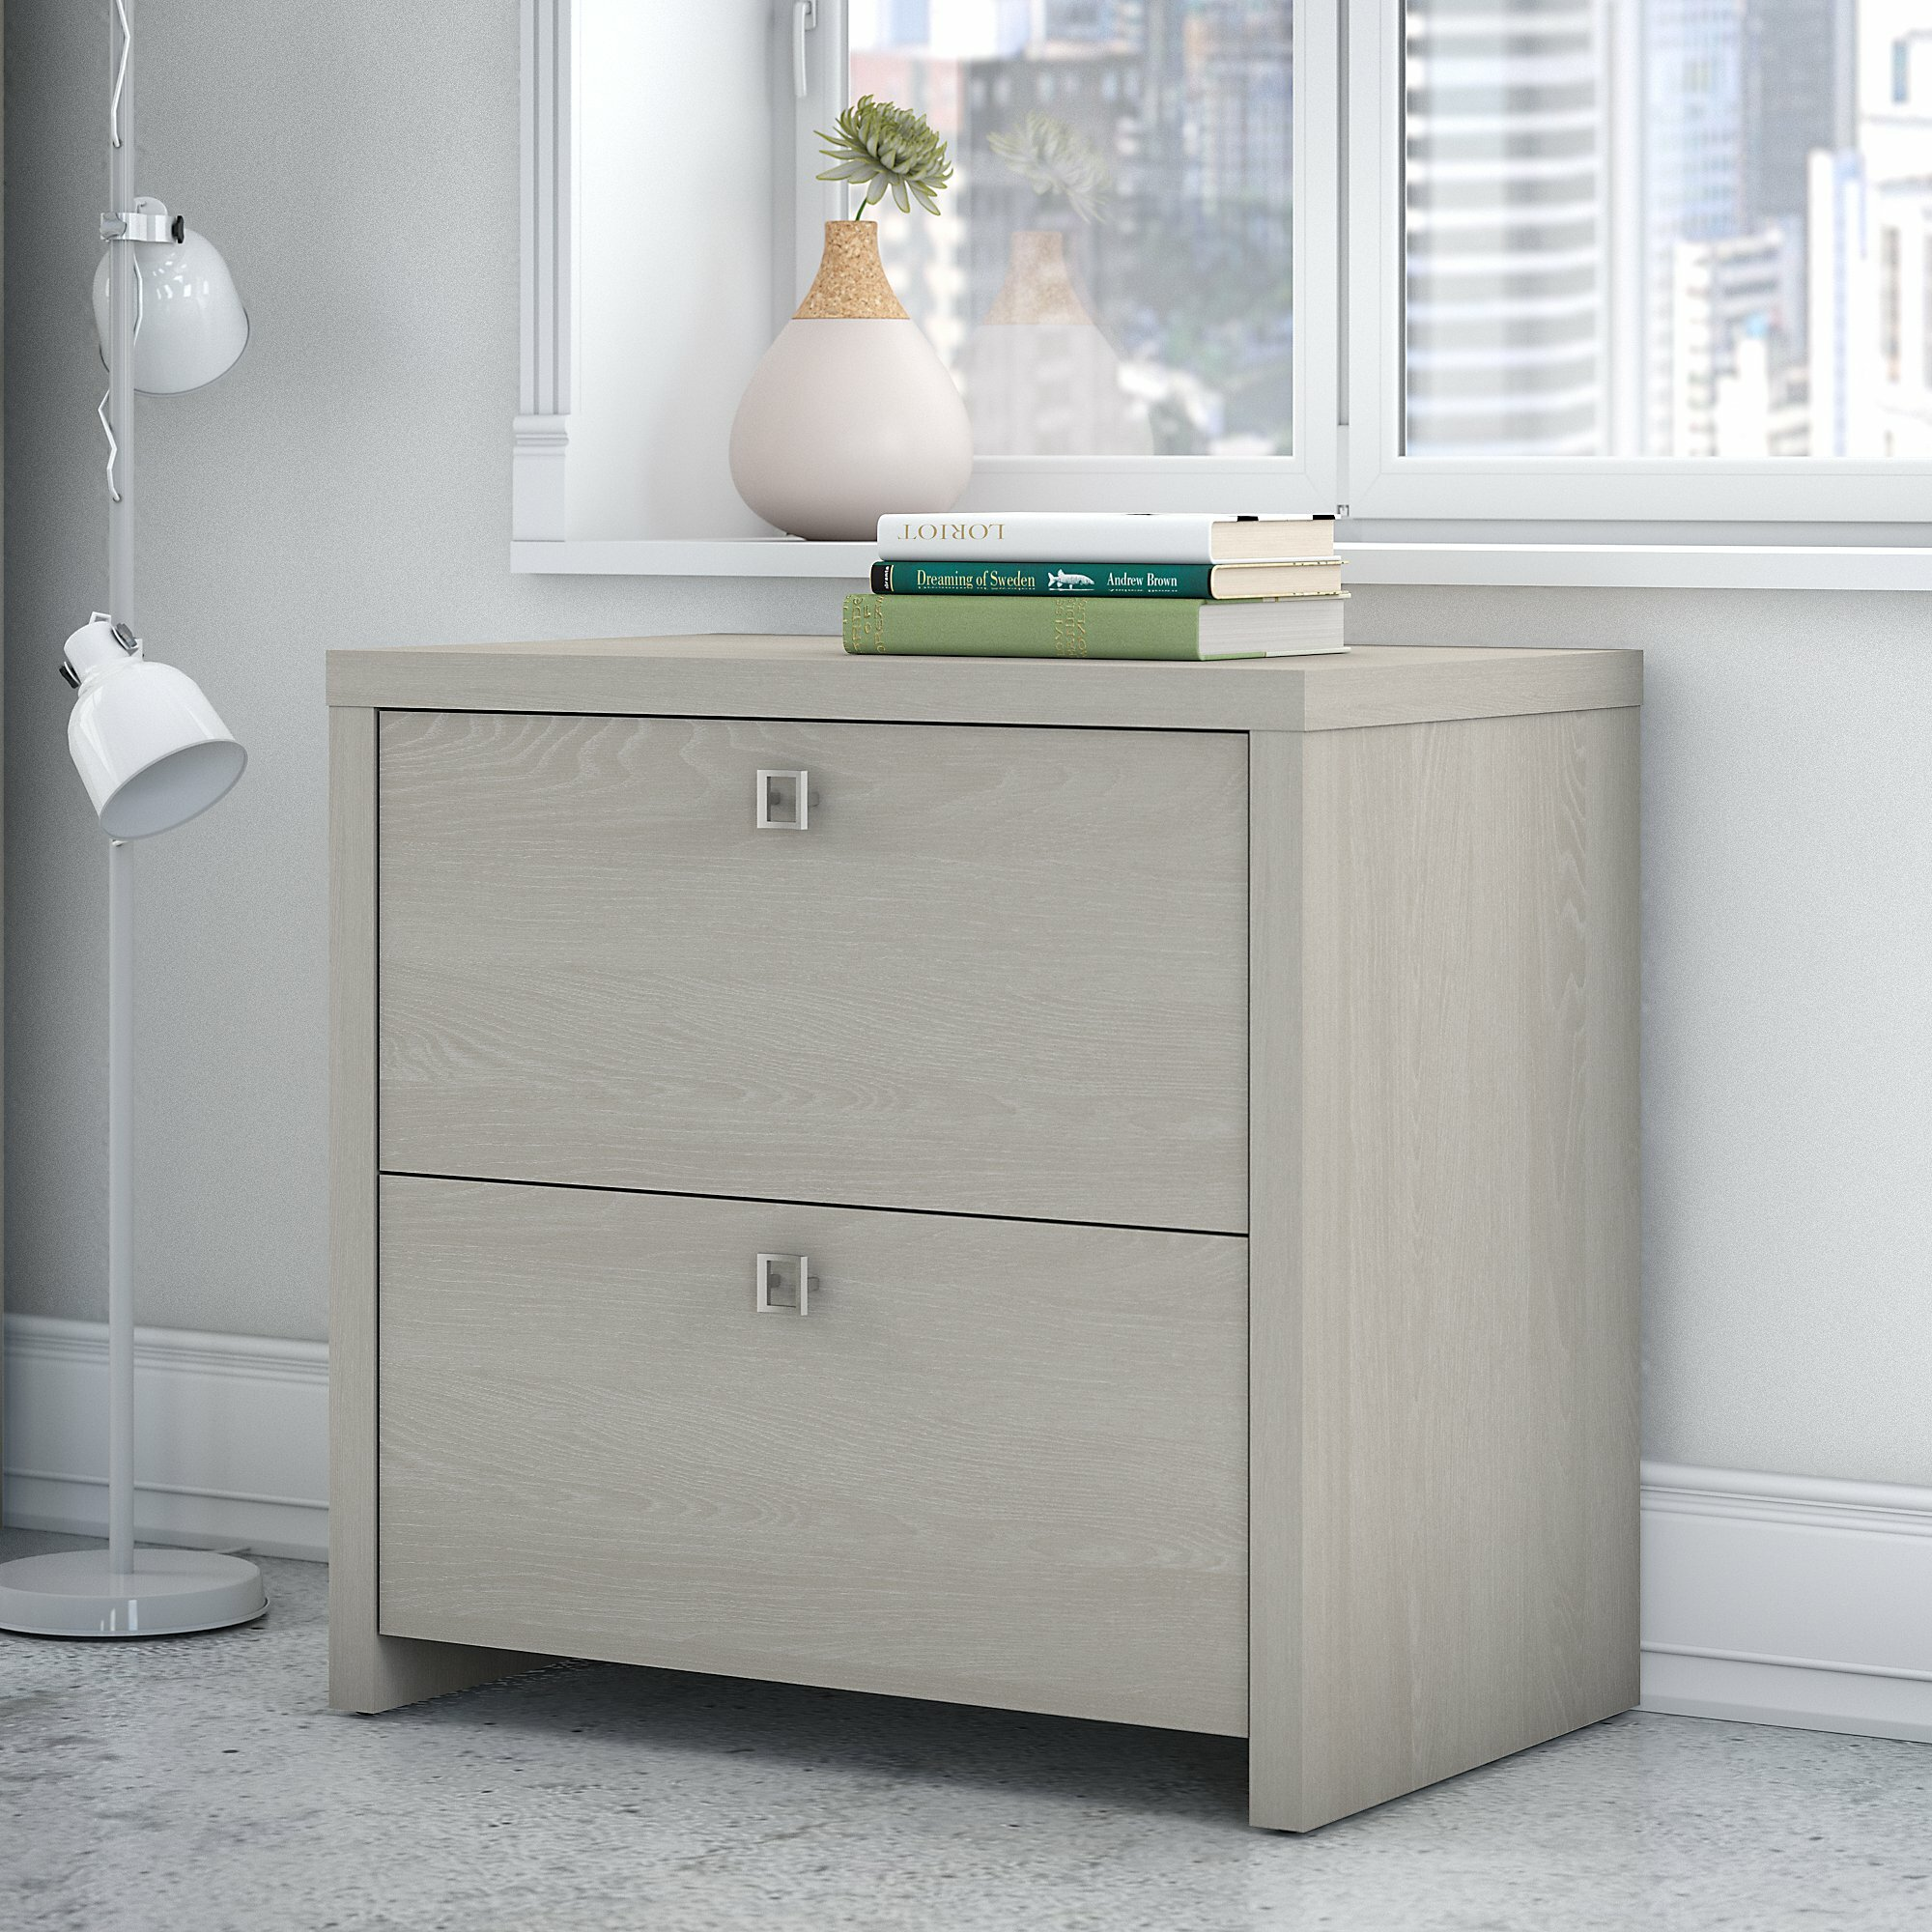 Echo 45-Drawer Lateral Filing Cabinet